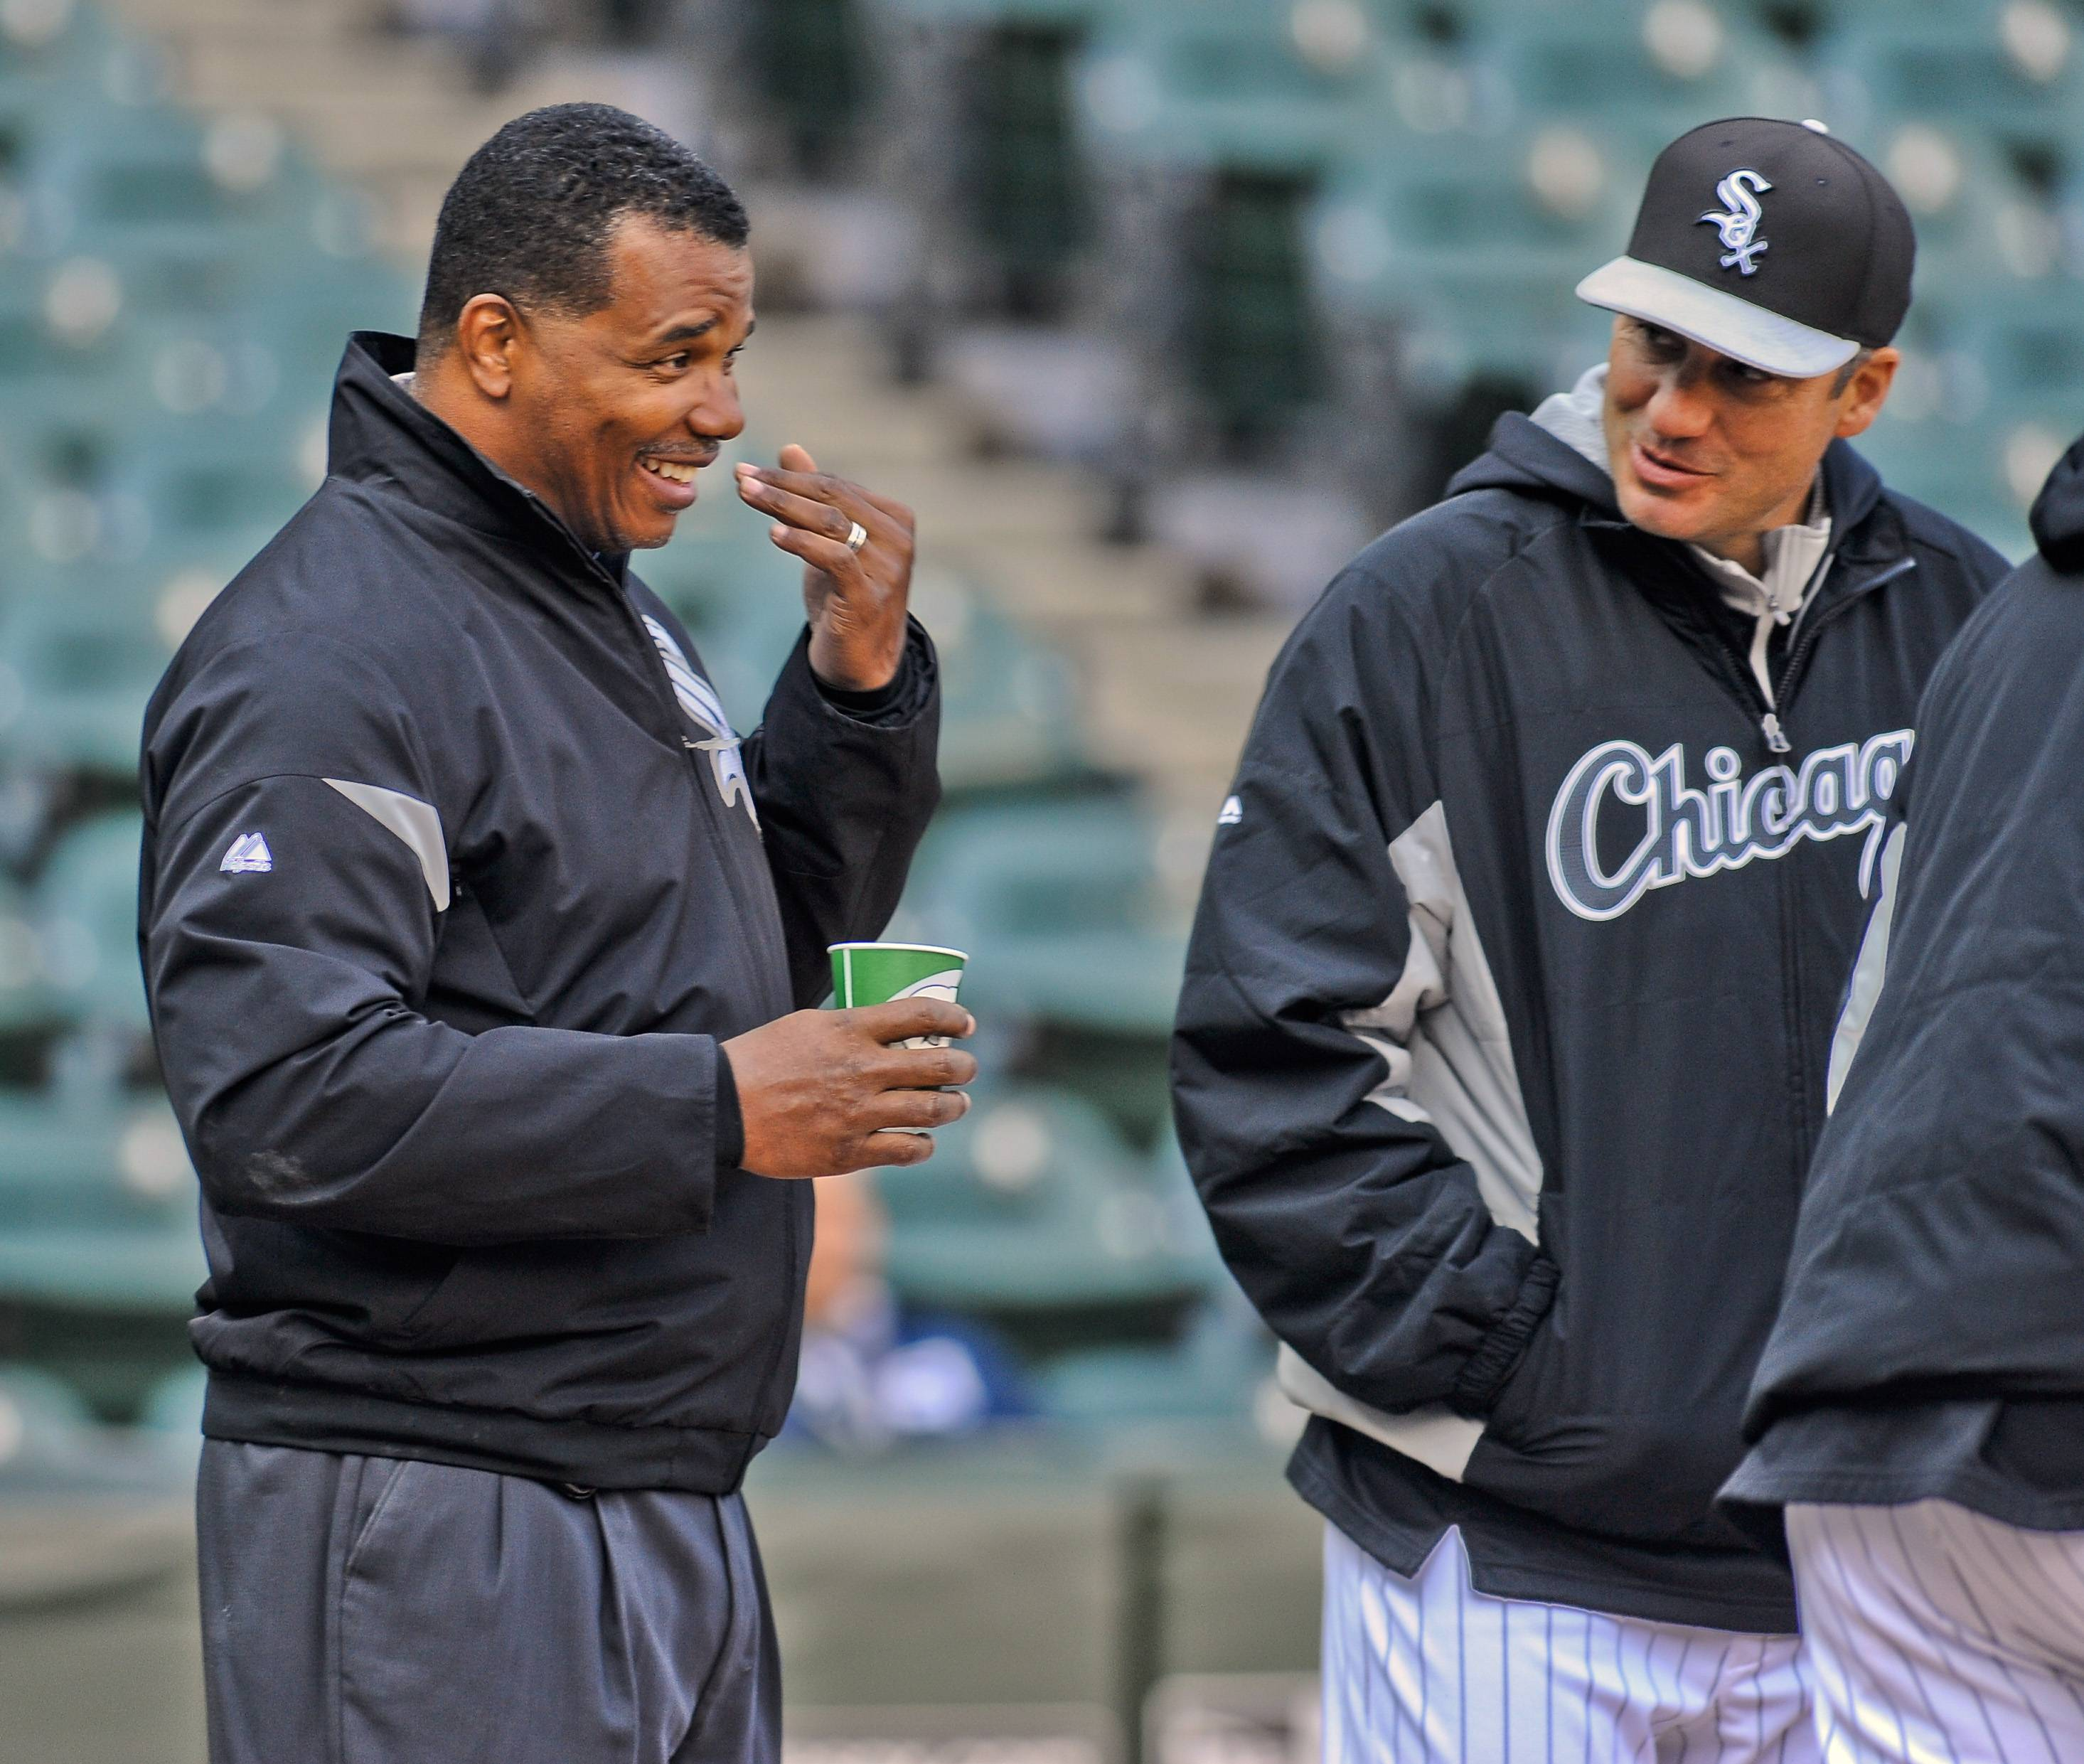 Chicago White Sox vice president Kenny Williams, left, was in full agreement with how manager Robin Ventura, right, and general manager Rick Hahn handled the Chris Sale situation over the weekend.